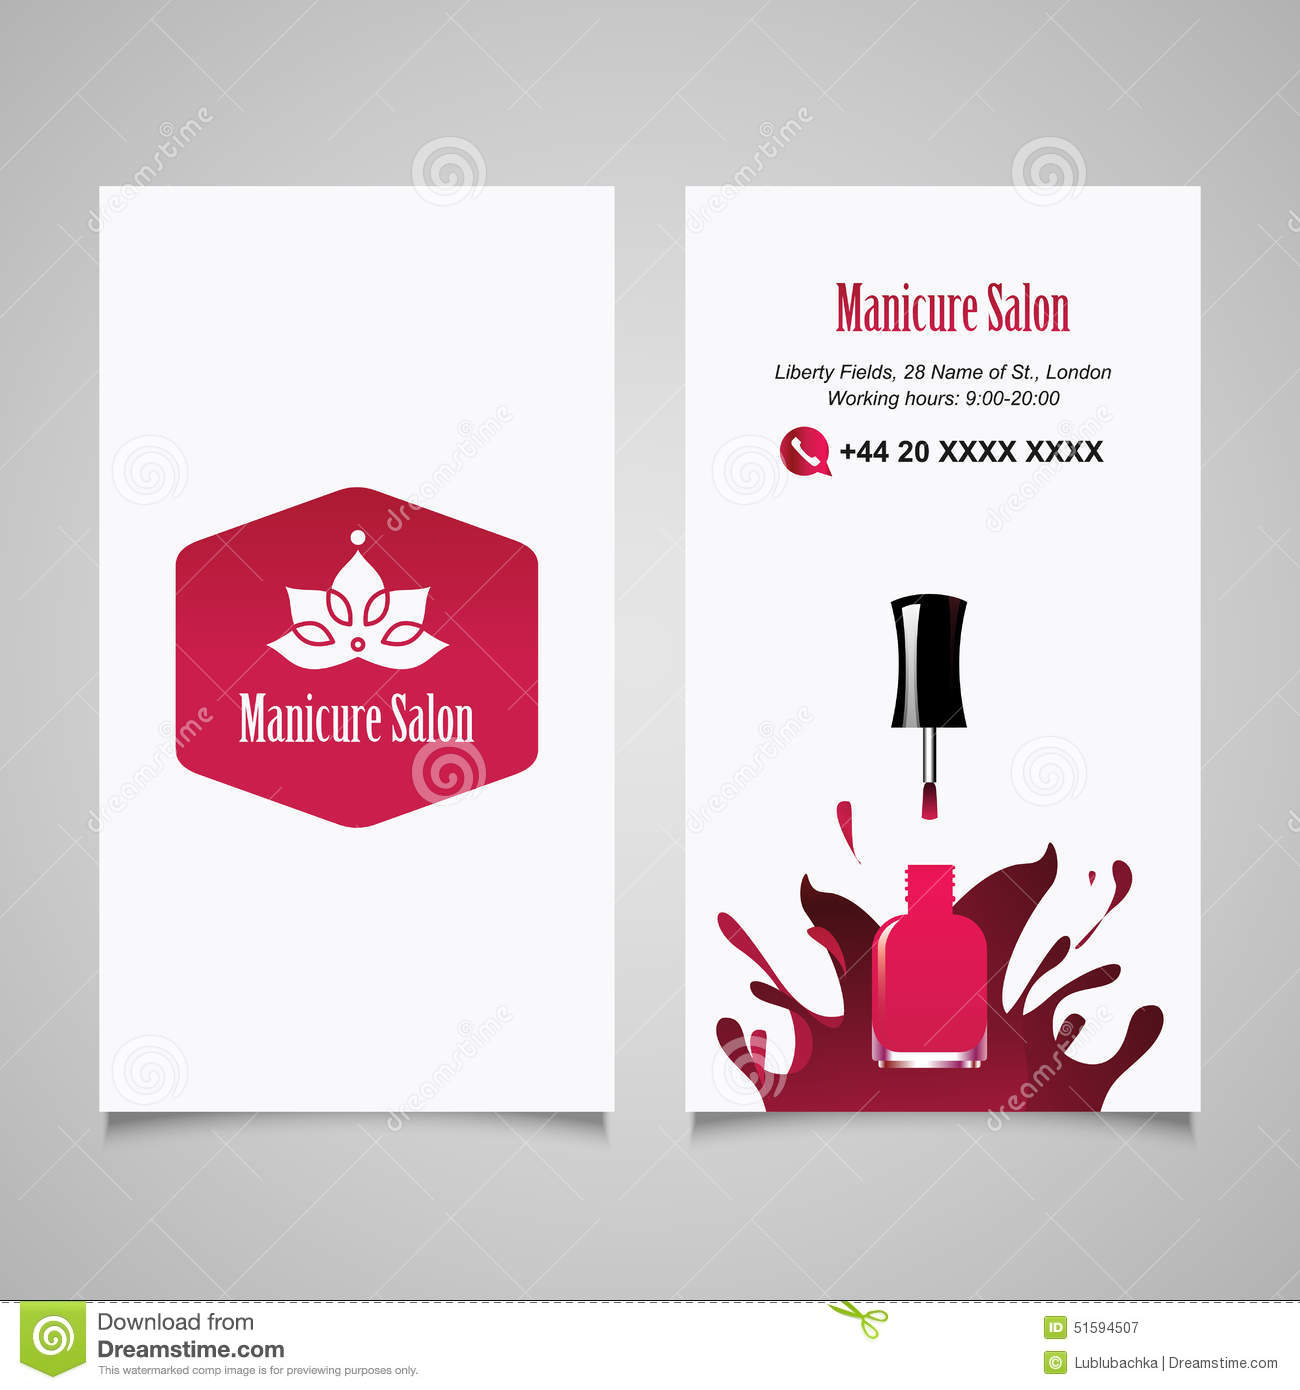 Manicure salon business card vector design templates set stock manicure salon business card vector design templates set royalty free vector reheart